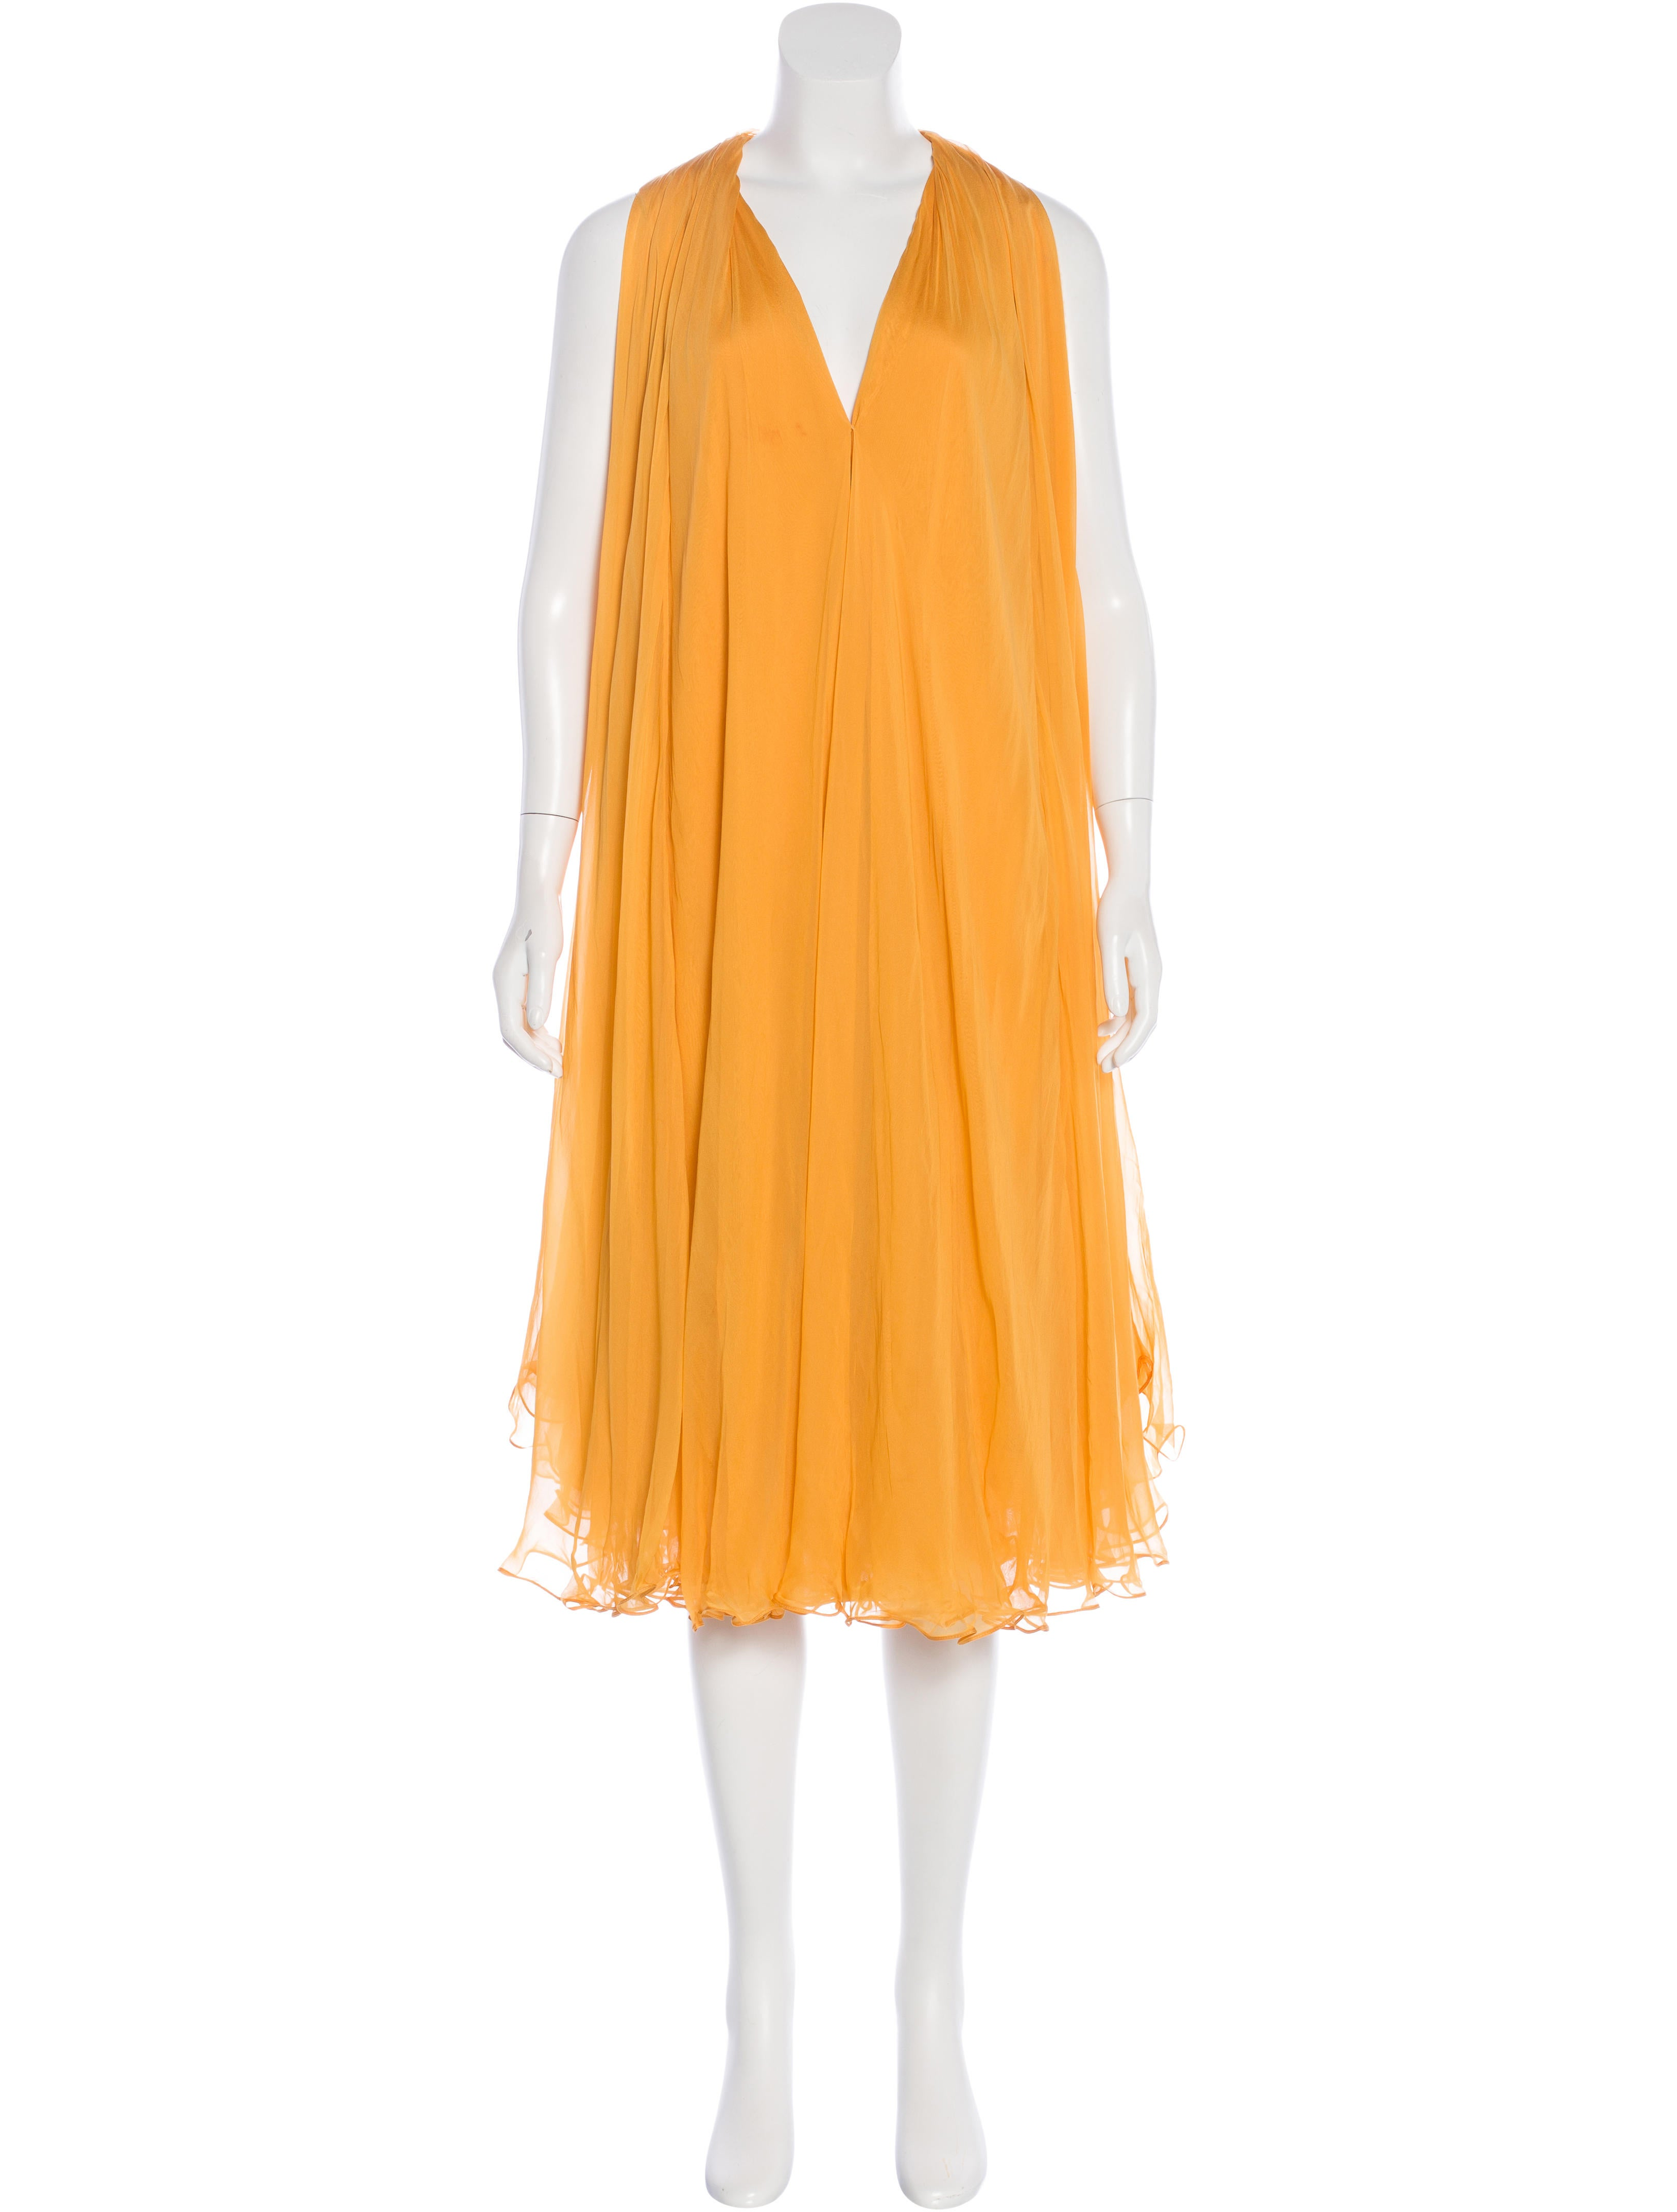 Find silk chiffon dresses at ShopStyle. Shop the latest collection of silk chiffon dresses from the most popular stores - all in one place.